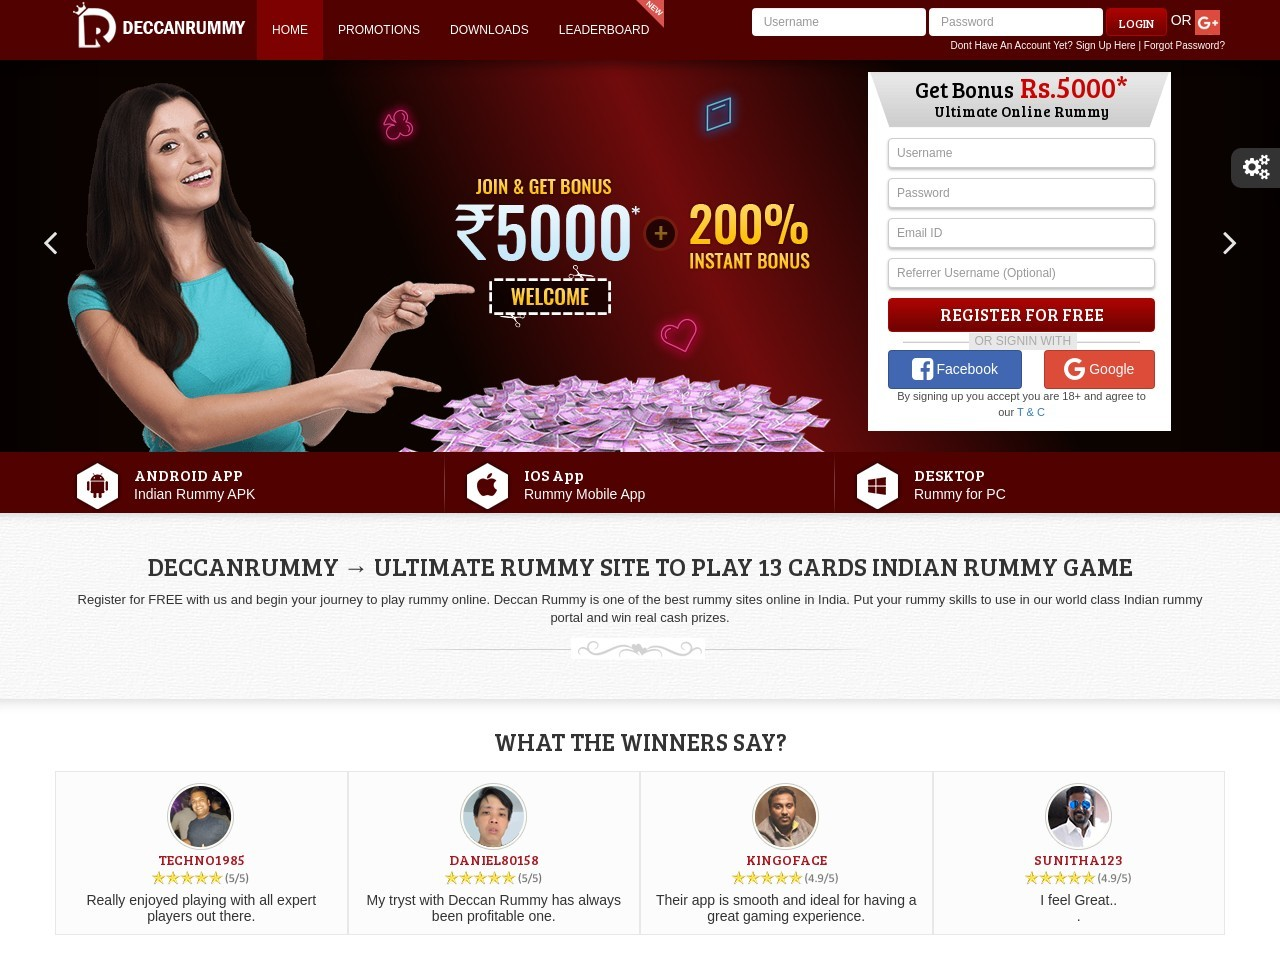 How to play Online Rummy responsibly? – Deccan Rummy